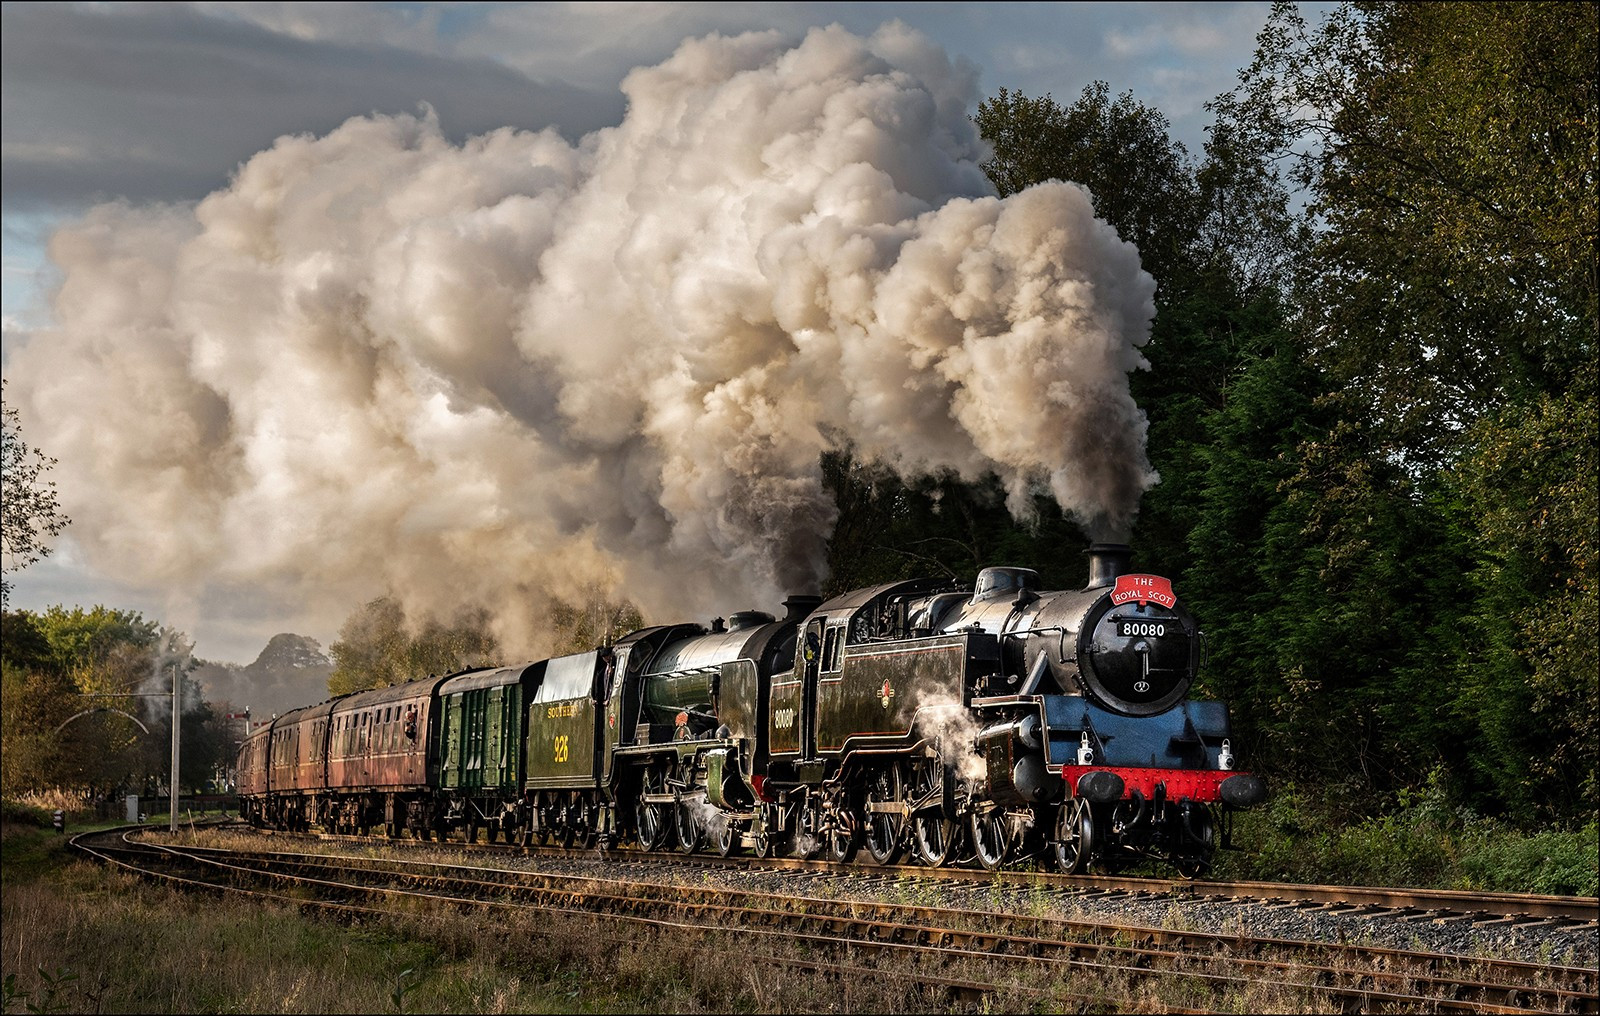 80080 Double heads with Repton. East Lancs Steam Gala.